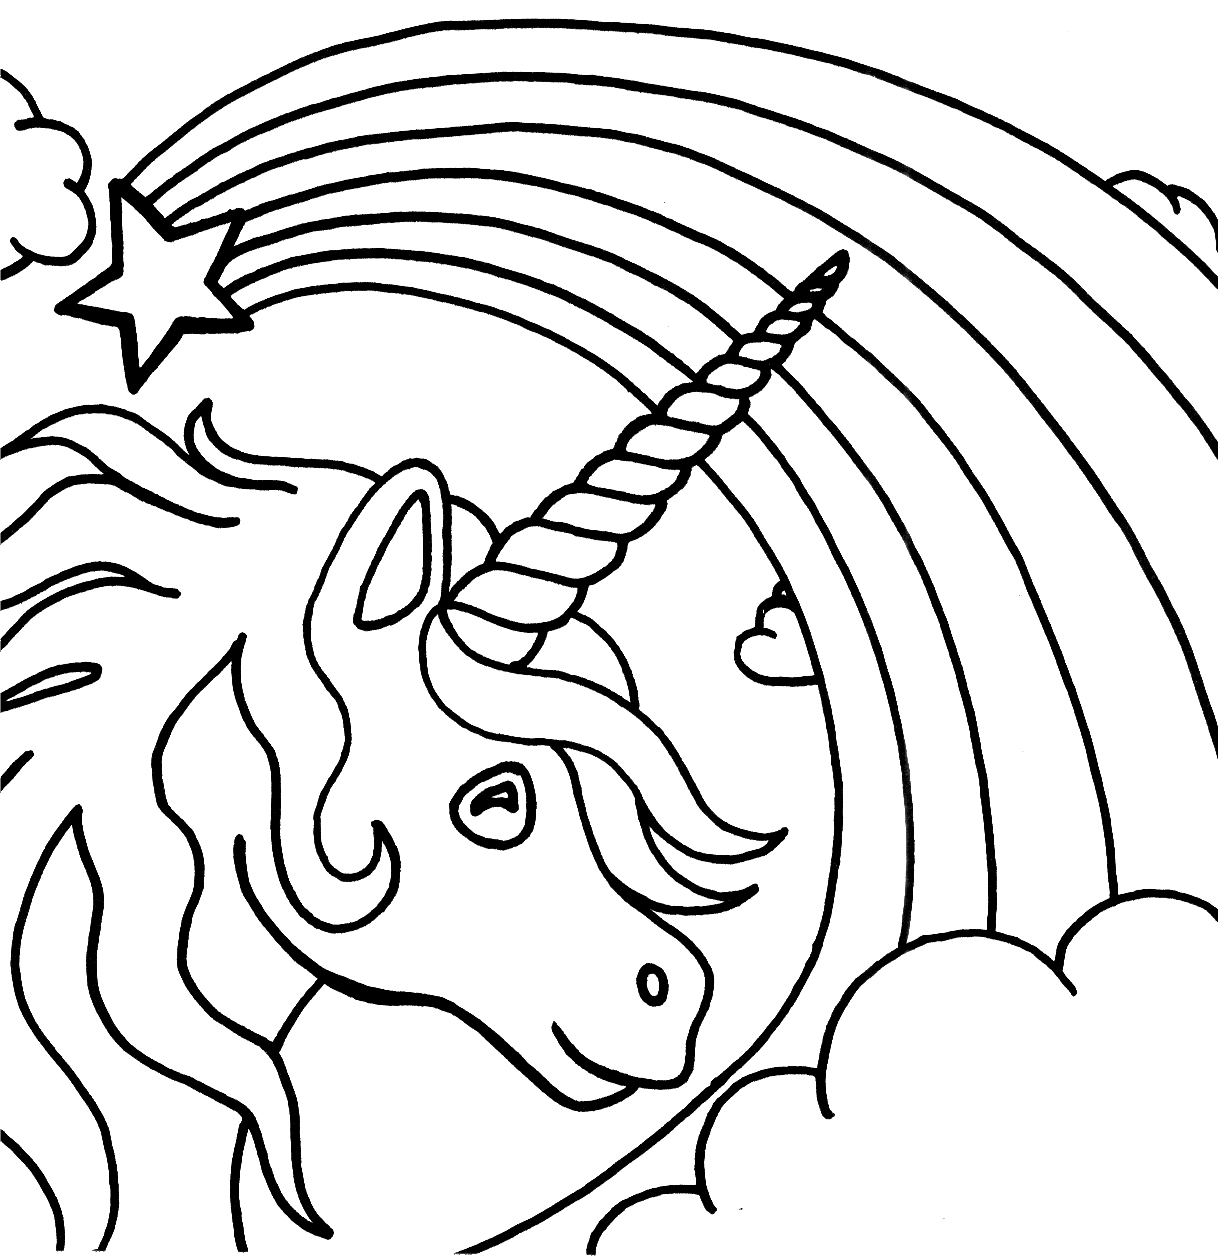 - Unicorn Coloring Pages – Coloring.rocks!